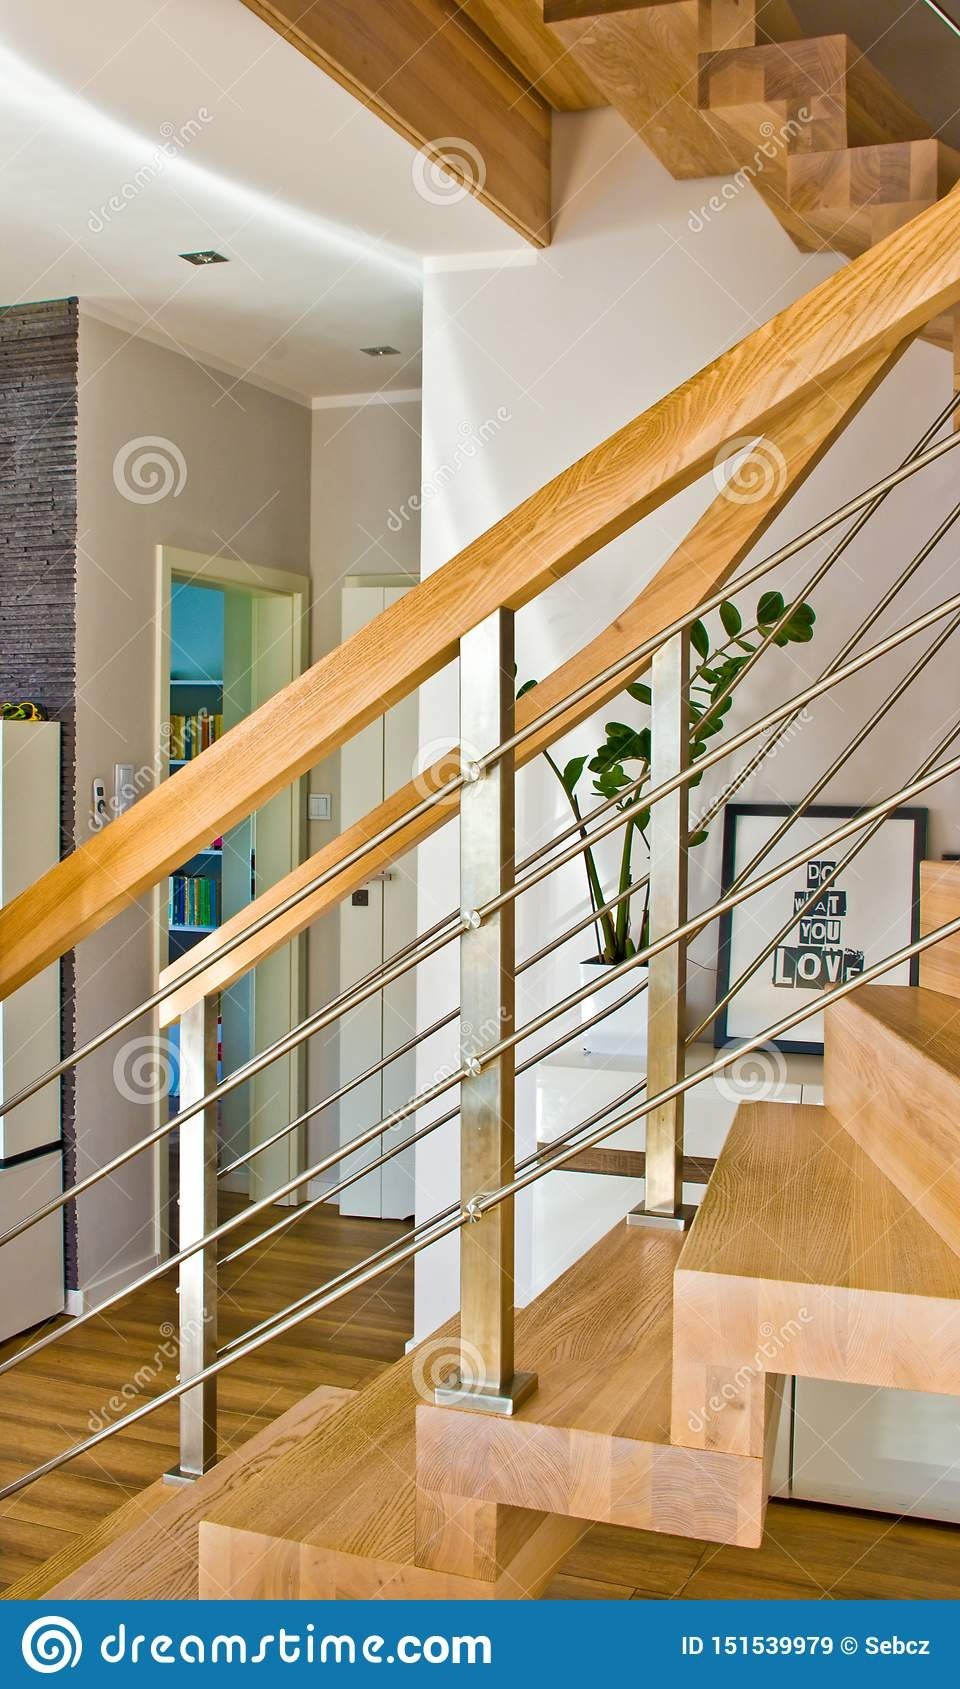 Modern Home Living Room Area With Wooden Stairs Stock Image | Staircase Inside Living Room | Kitchen Stair | Apartment | Inside Lounge | Staircase Tv | Private Home